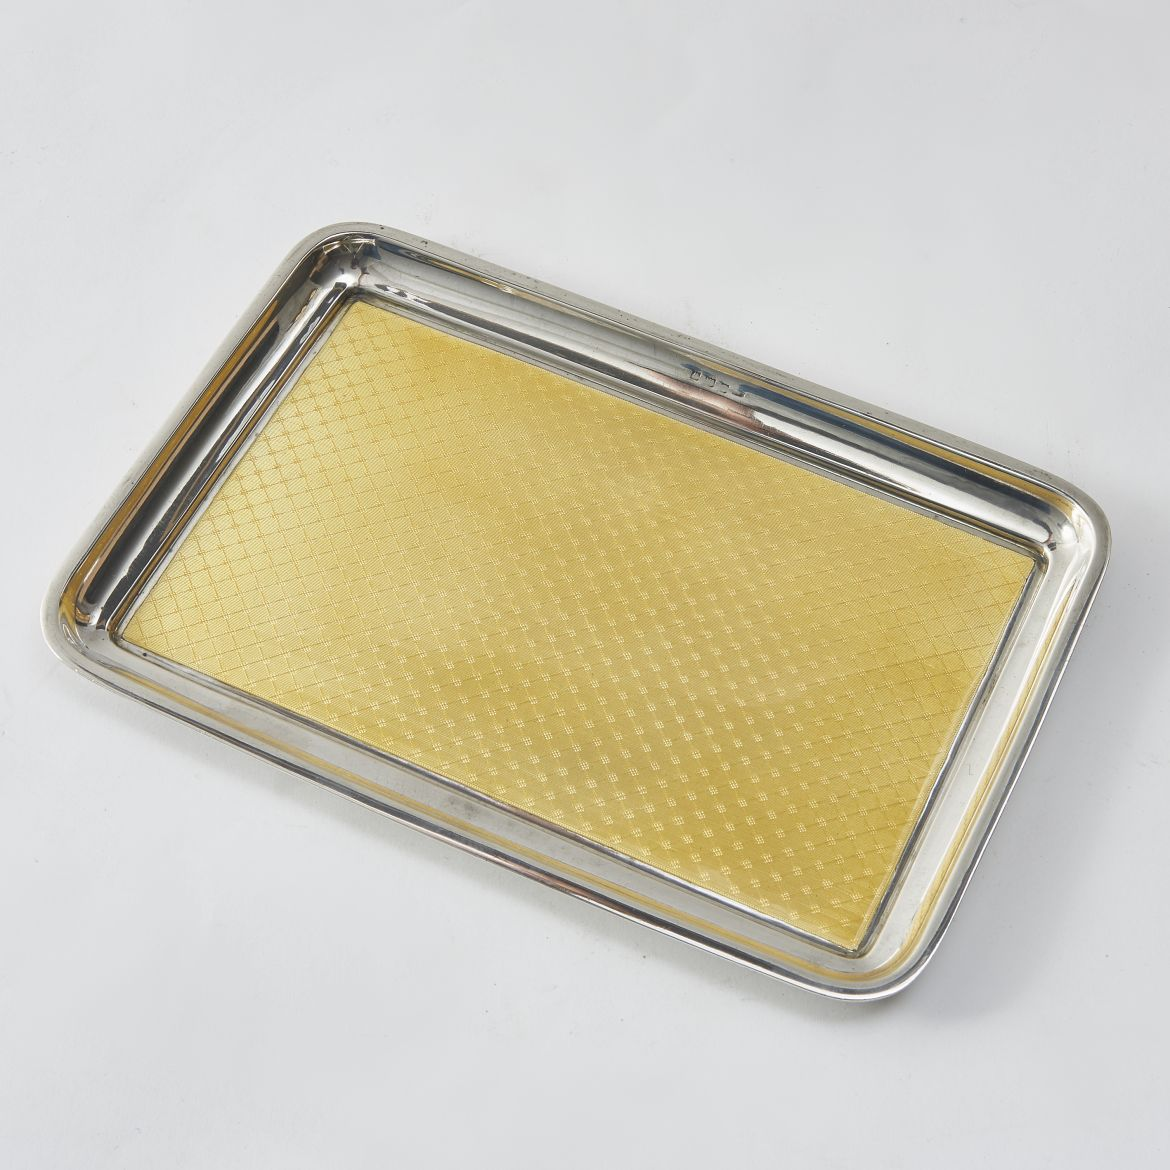 Silver And Yellow Enamel tray